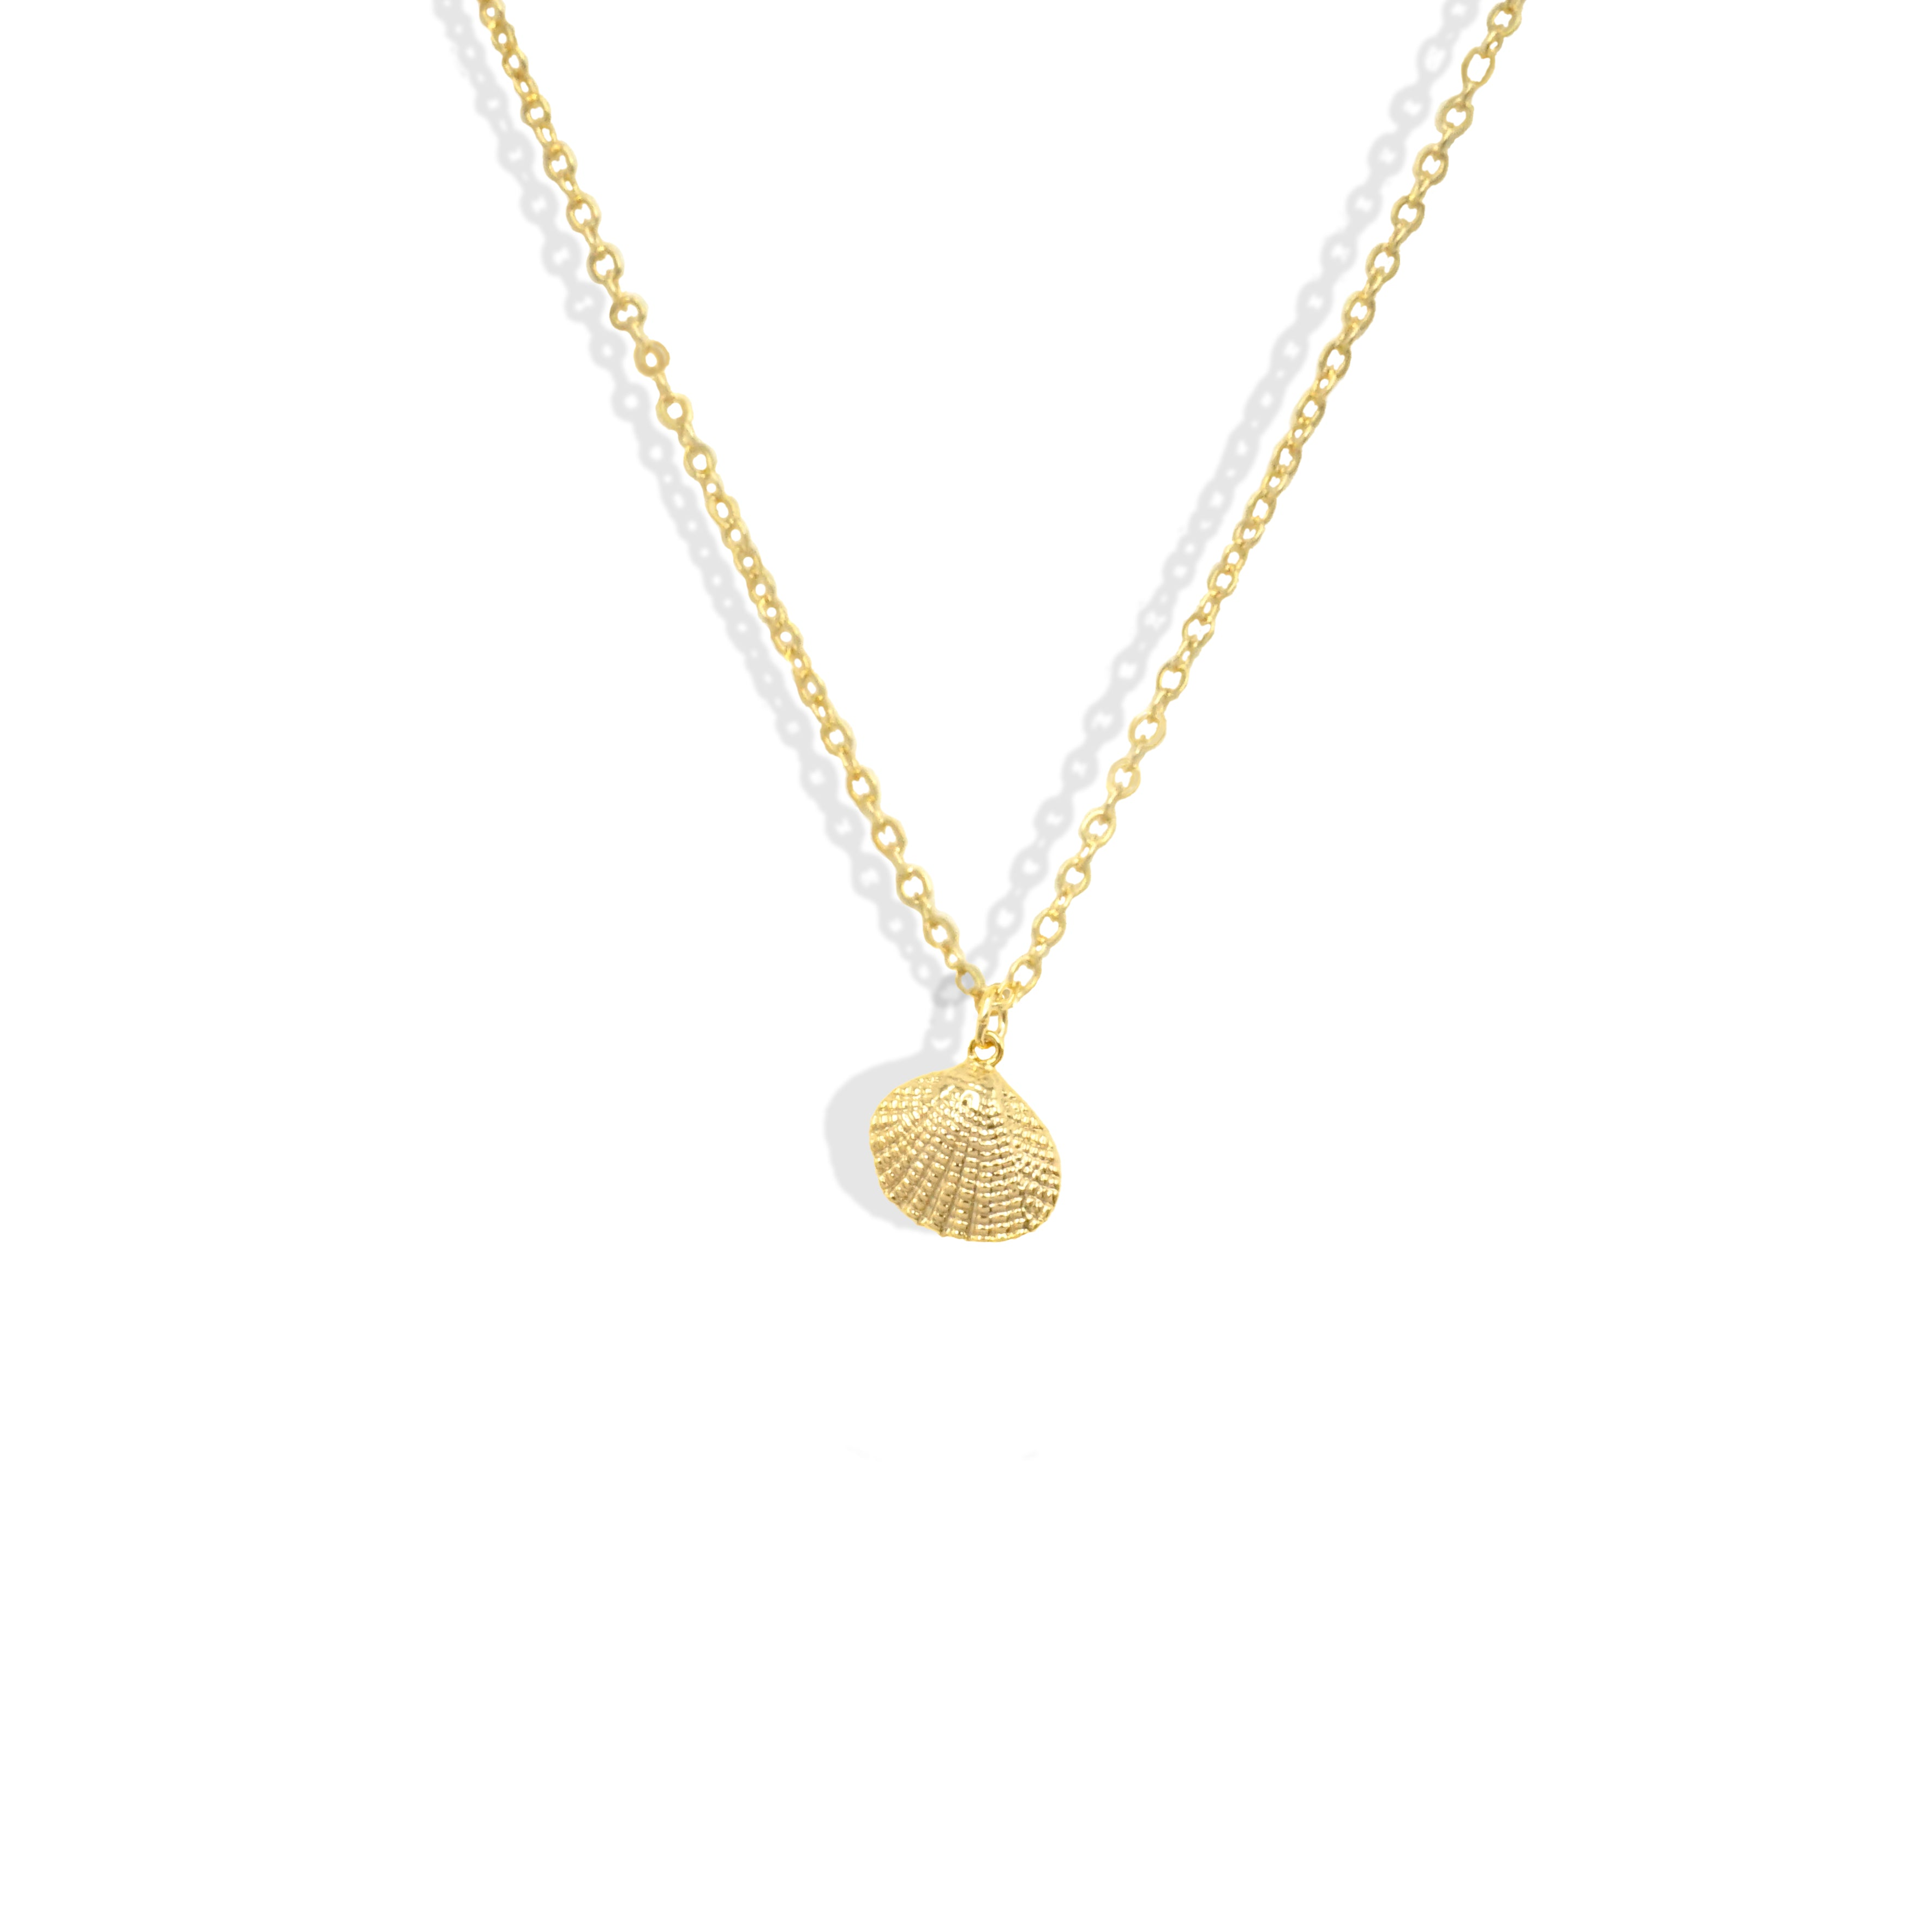 Gold Scallop Shell Dainty Necklace - IT STYLE BOX